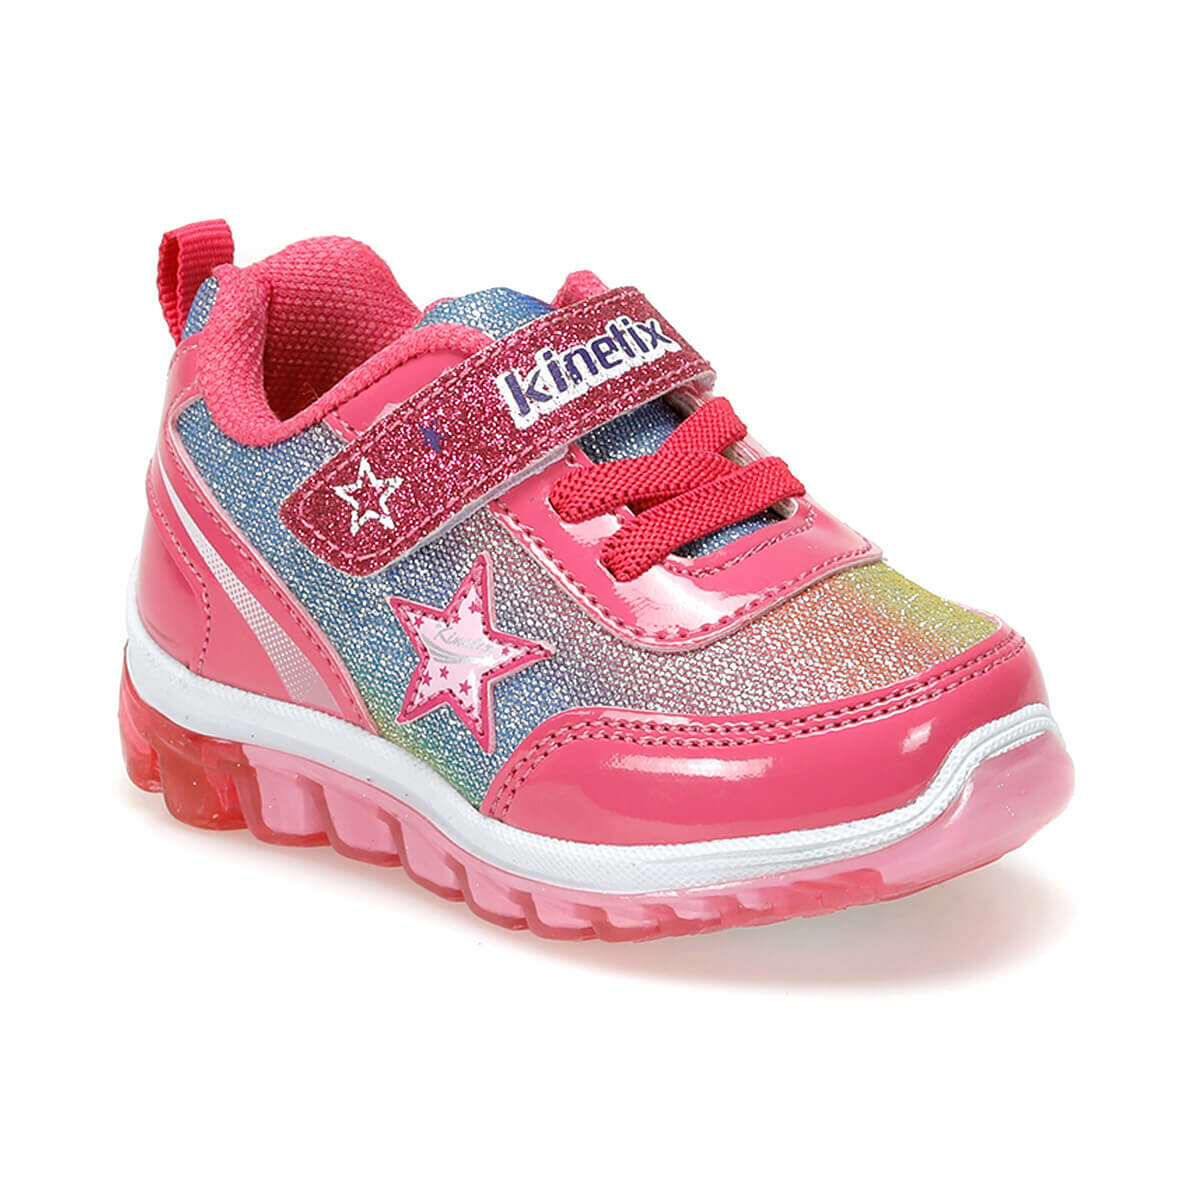 FLO SIMA 9PR Fuchsia Female Child Sneaker Shoes KINETIX